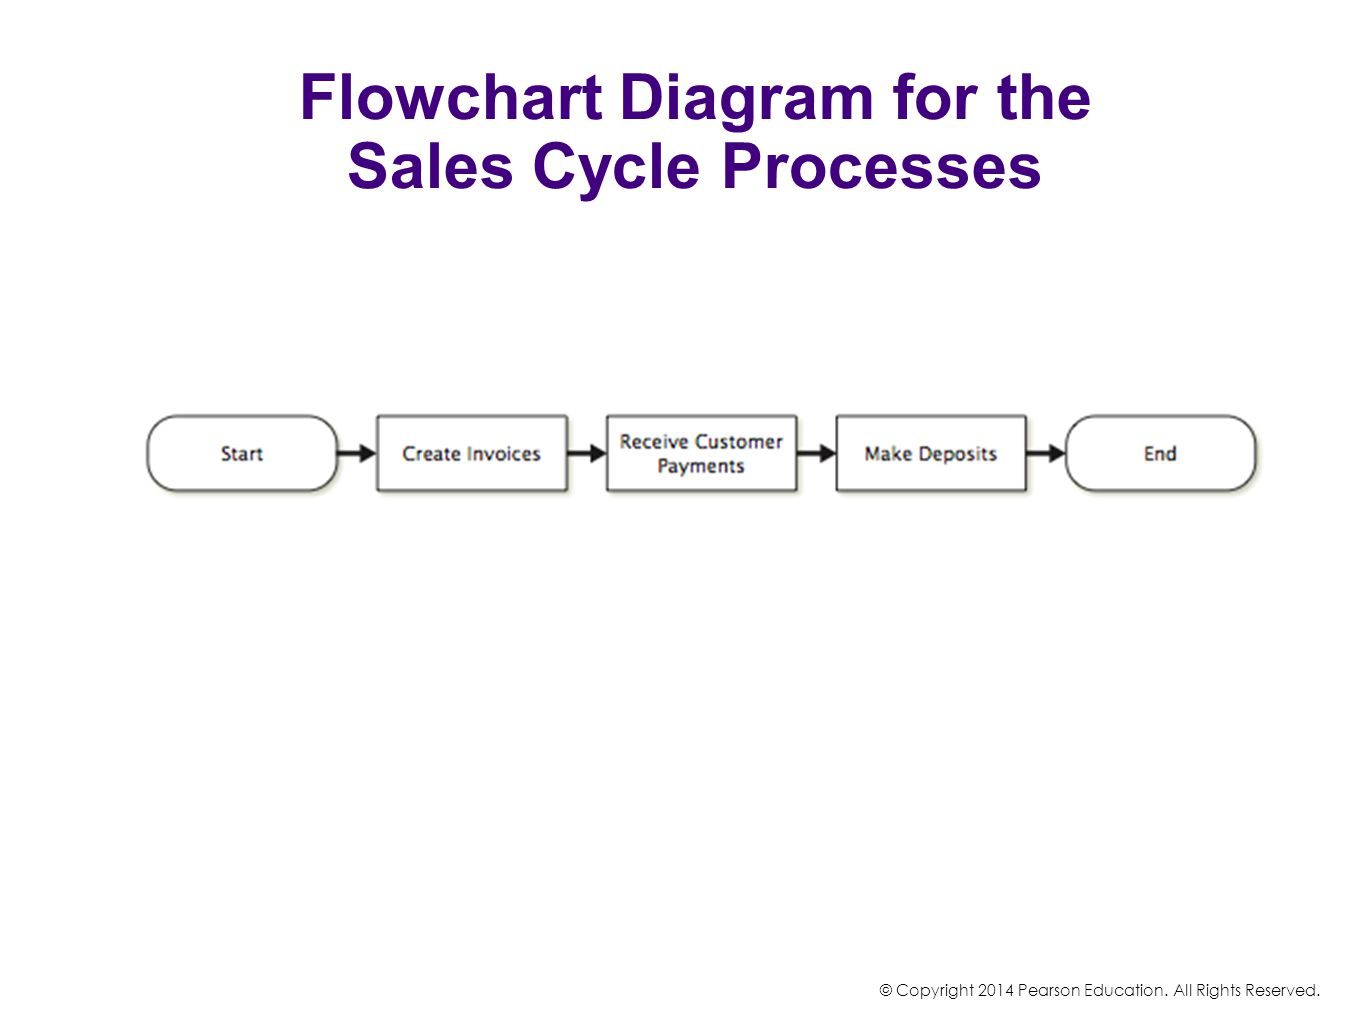 Flowchart Diagram for the